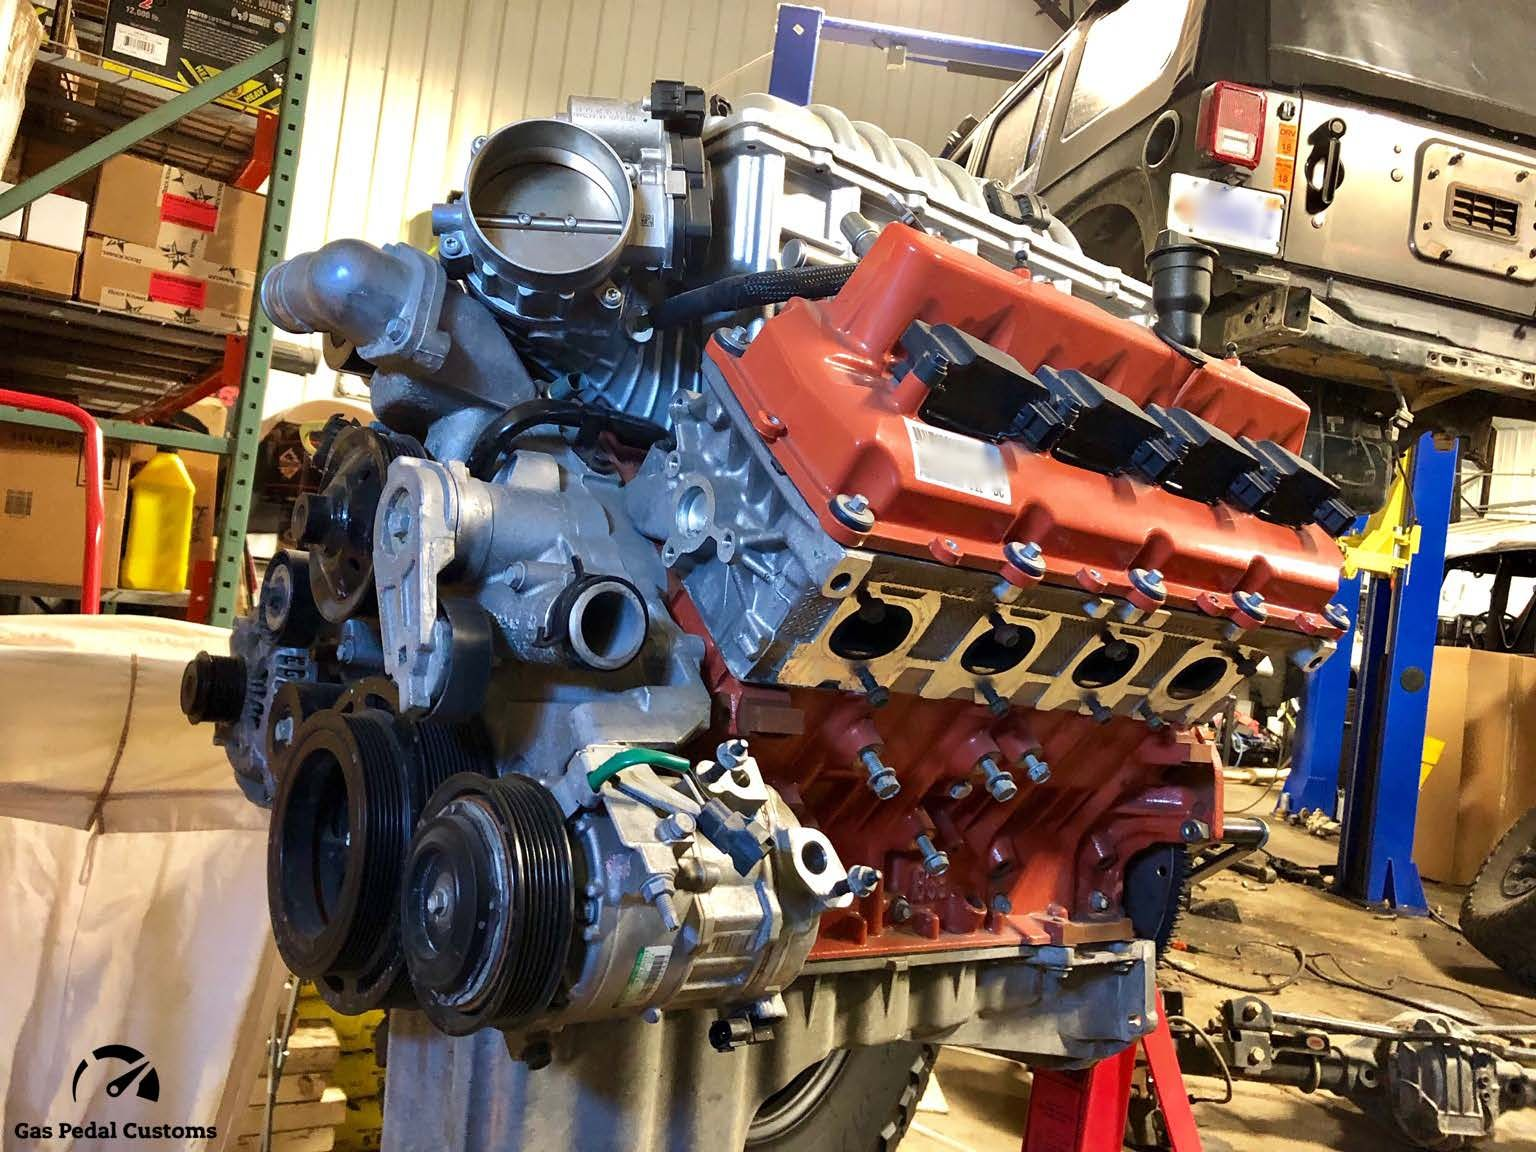 medium resolution of hellcat engine for a custom jeep wrangler unlimited gas pedal customs hemi jeep conversions jeep suspension systems accessories wheels and more